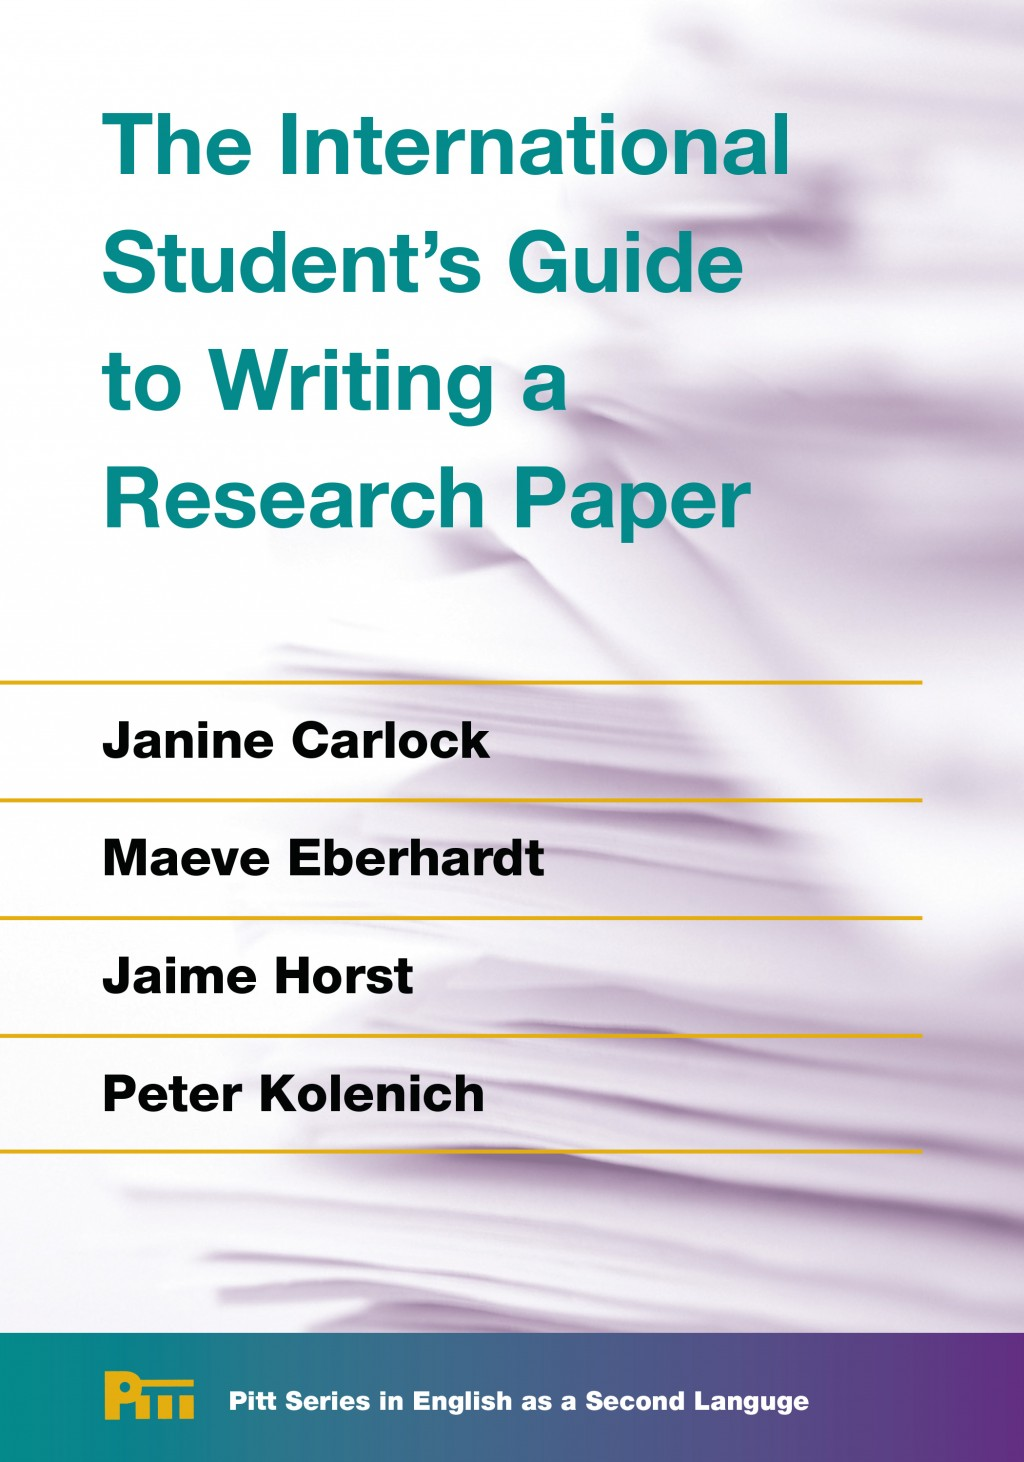 012 Research Paper Writing Unique Papers A Complete Guide Pdf Download James D Lester Large